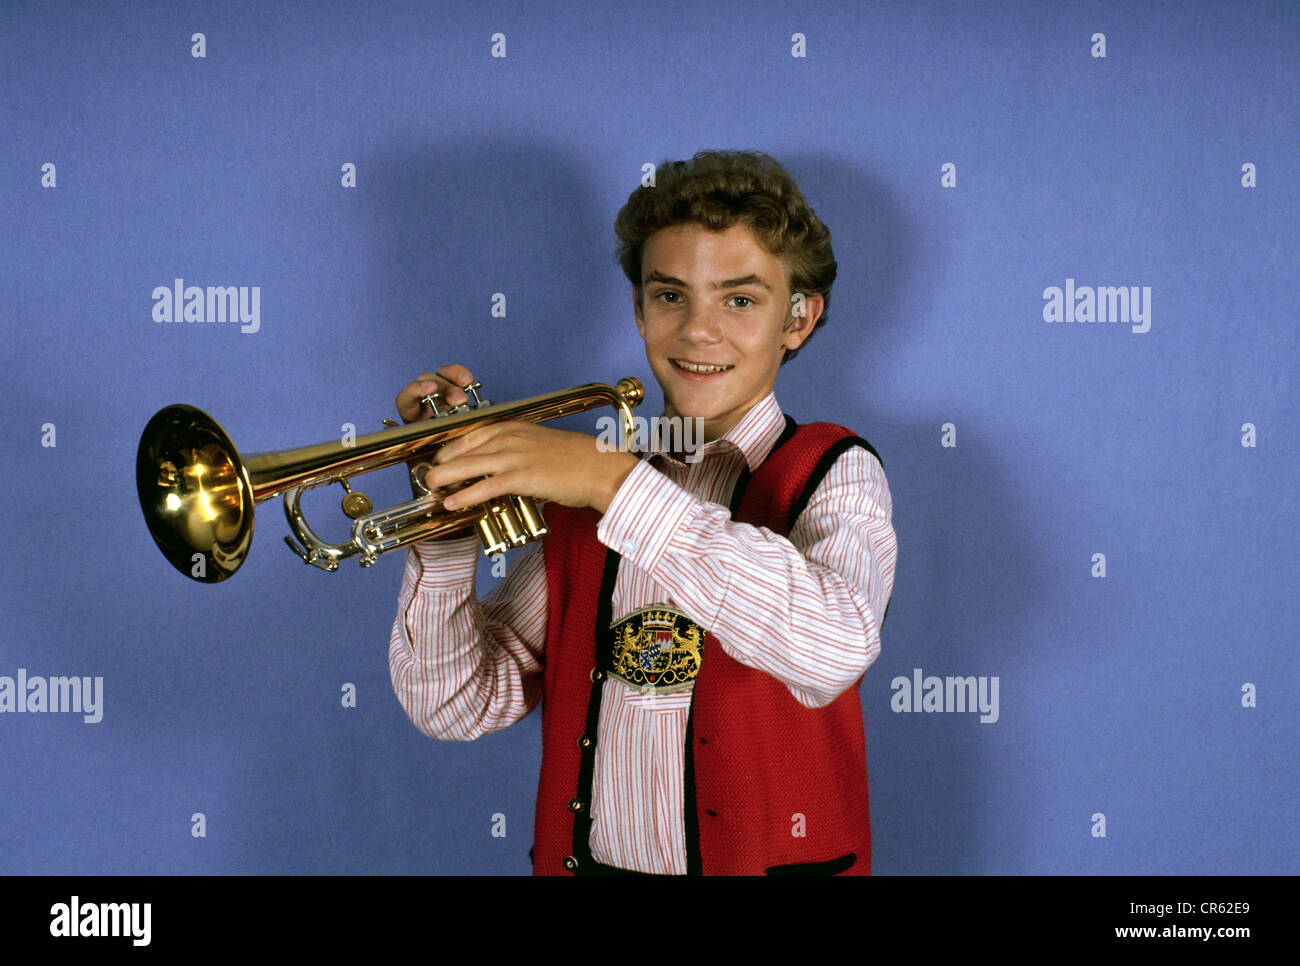 Mross Stefan, * 26.11.1975, German musician (rumpeter), winner of the Folk Music Grand Prix, 1989, , Additional - Stock Image